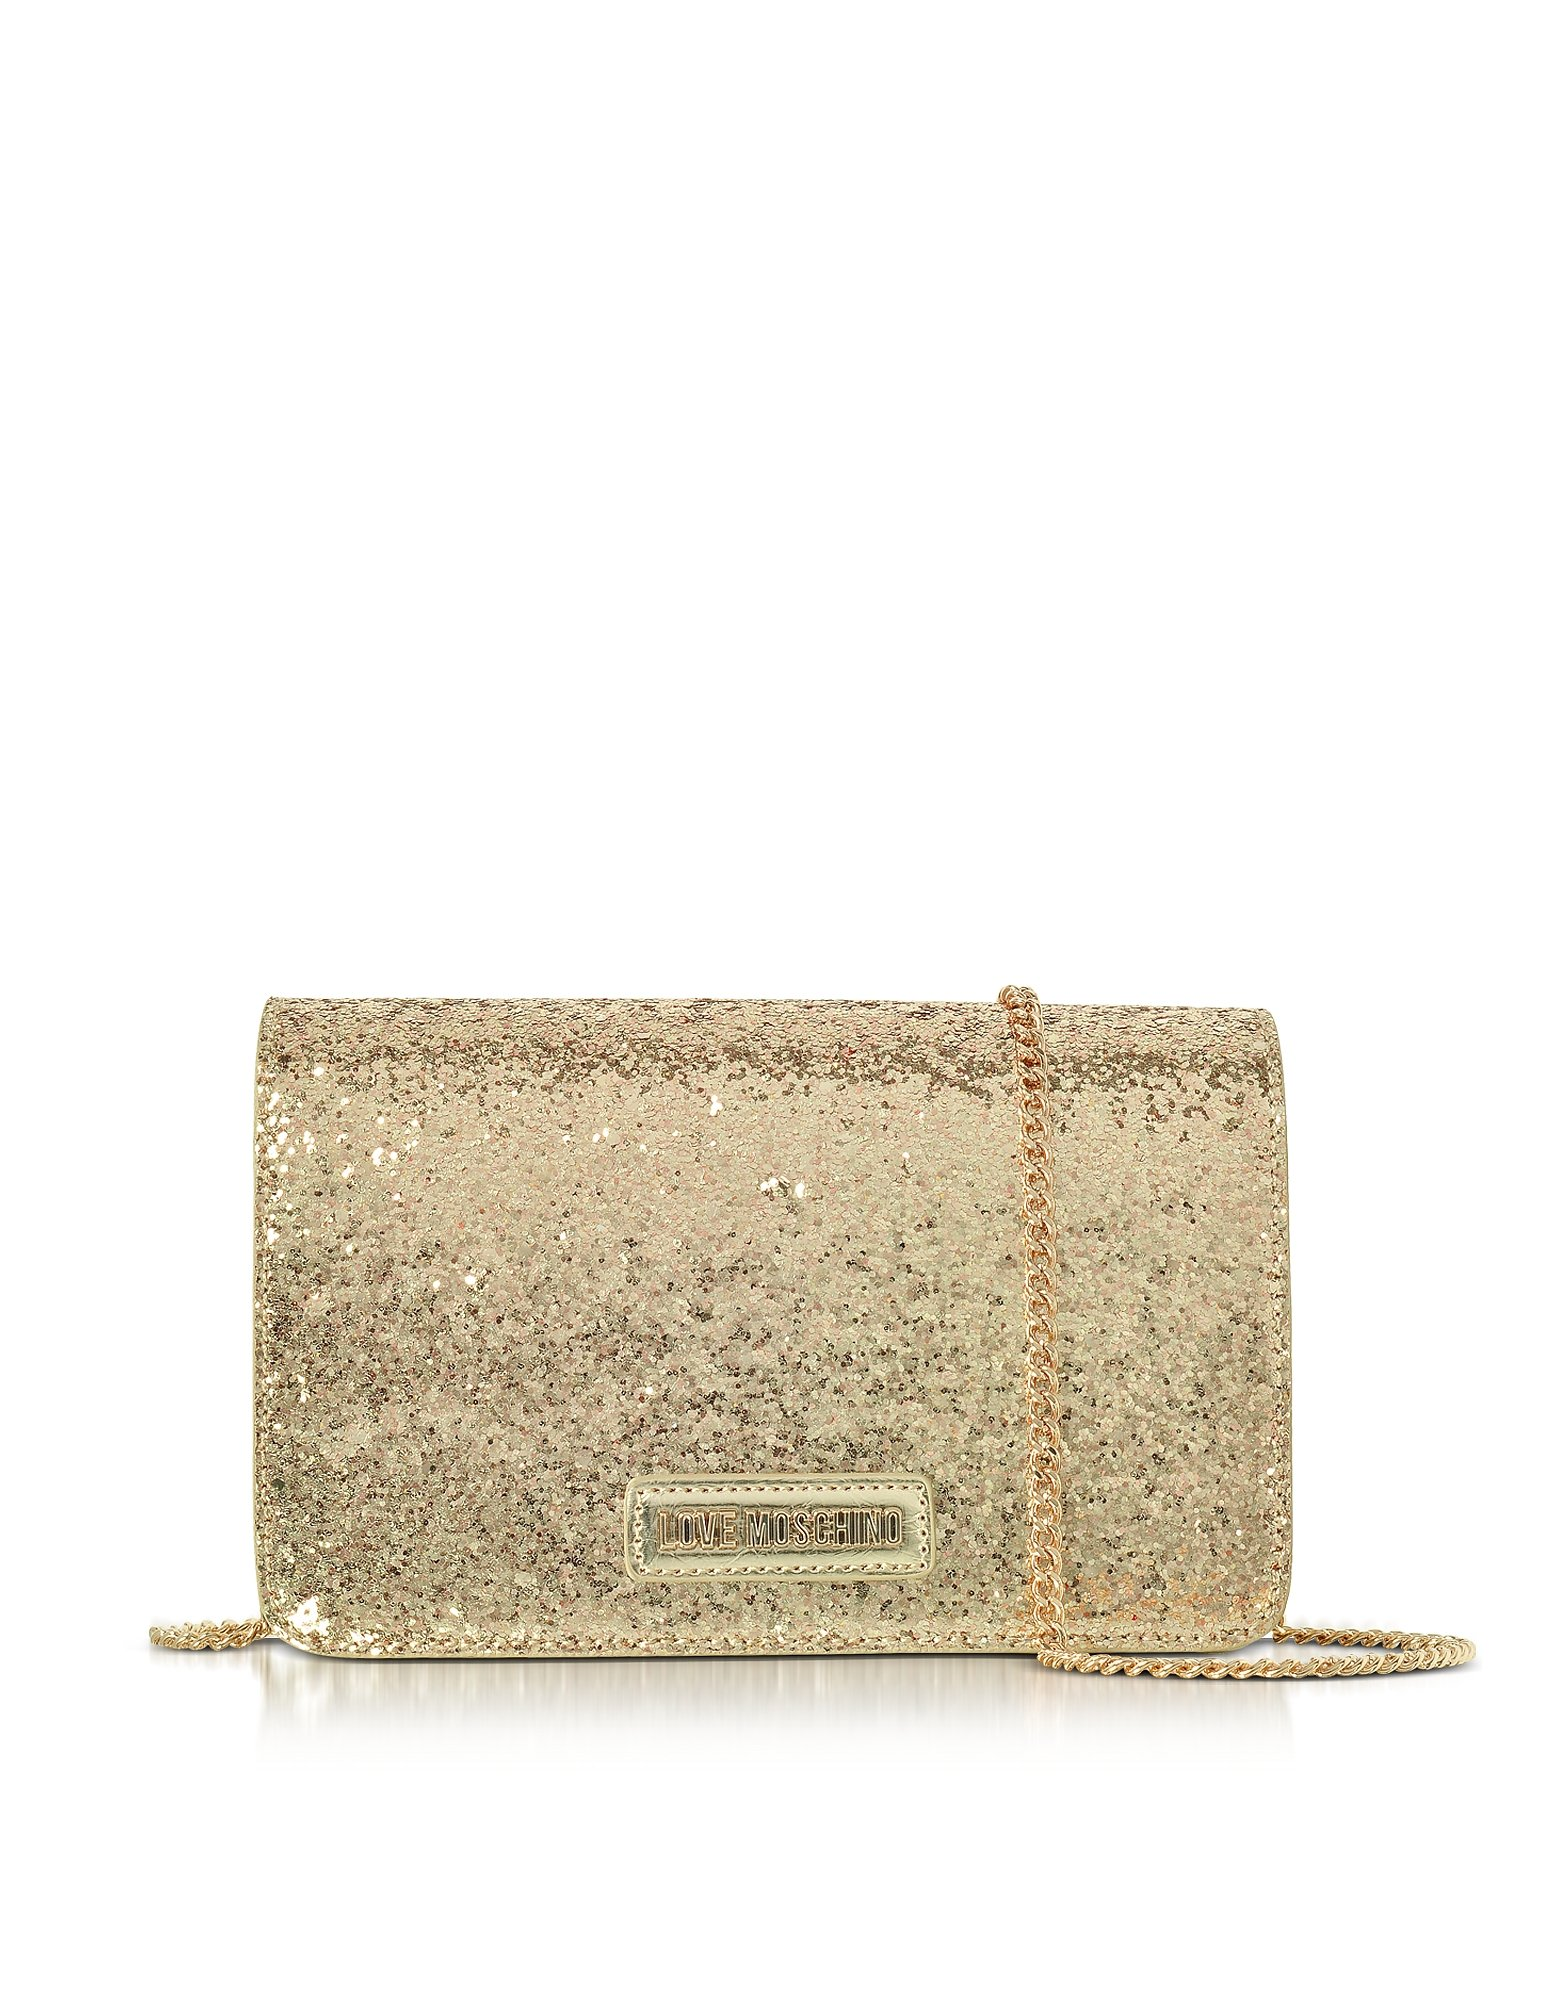 Love Moschino Women's Jc4091pp15ll0901 Gold Leather Shoulder Bag